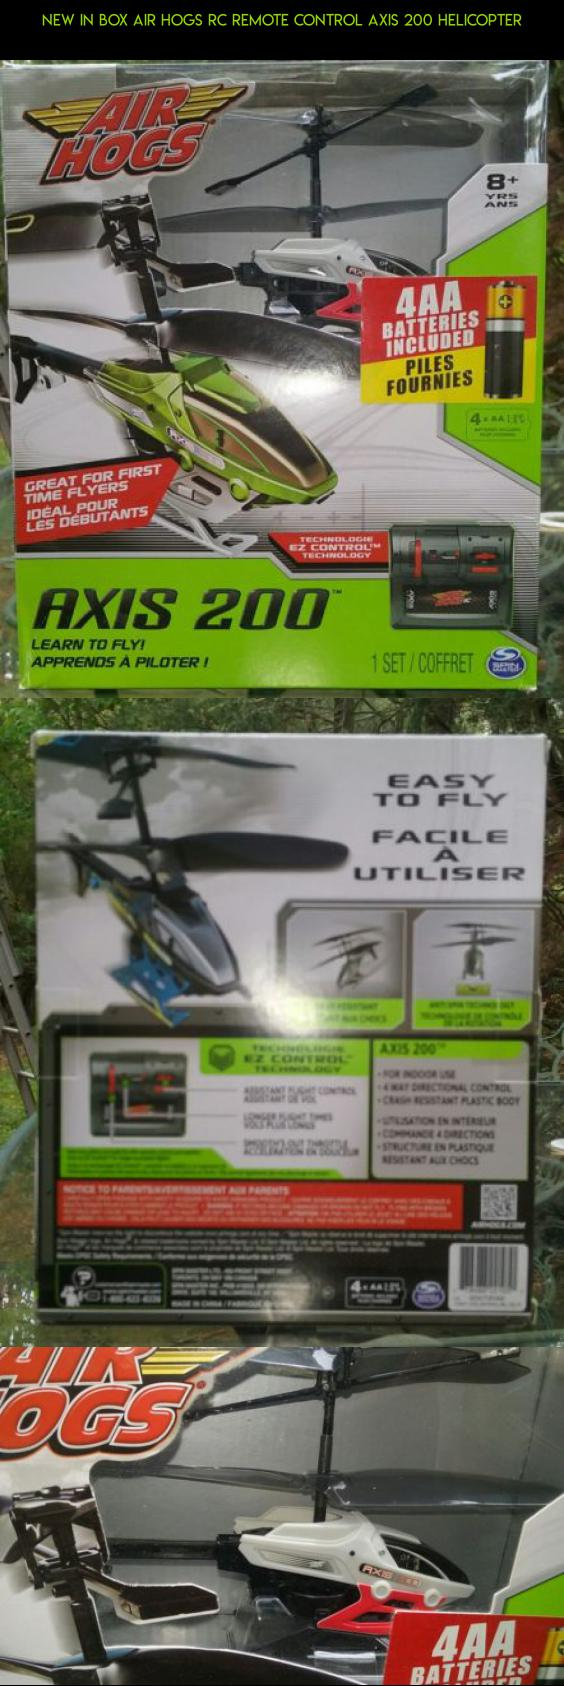 NEW IN BOX AIR HOGS RC REMOTE CONTROL AXIS 200 HELICOPTER #technology #fpv #plans #kit #gadgets #shopping #products #parts #air #drone #tech #hogs #200 #camera #racing